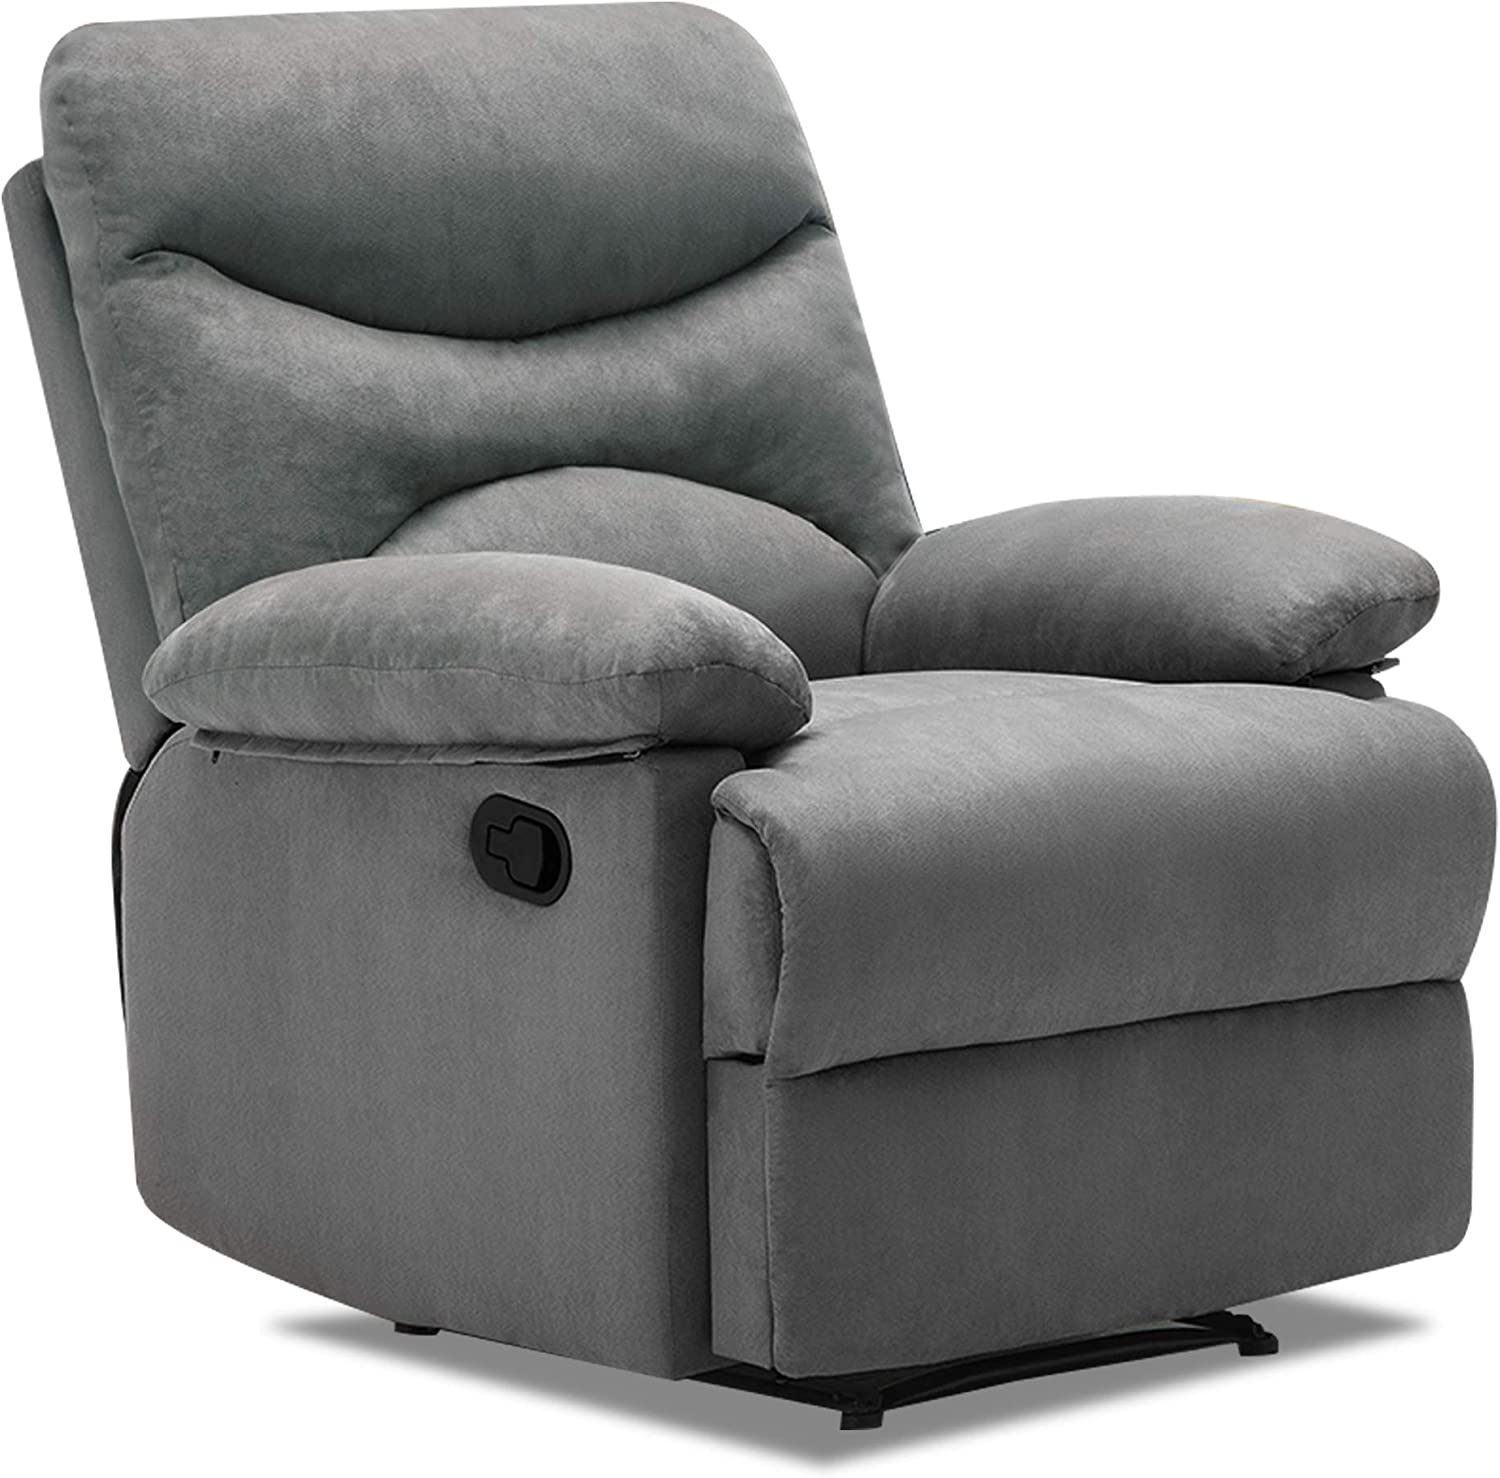 Amazon Com Windaze Recliner Chair Massage Recliner Chair Microfiber Ergonomic Living Room Chairs With Remote Control Heating Modern Recliner Sofa Seat Home Theater Seating Recliner Chair Grey Kitchen Dining